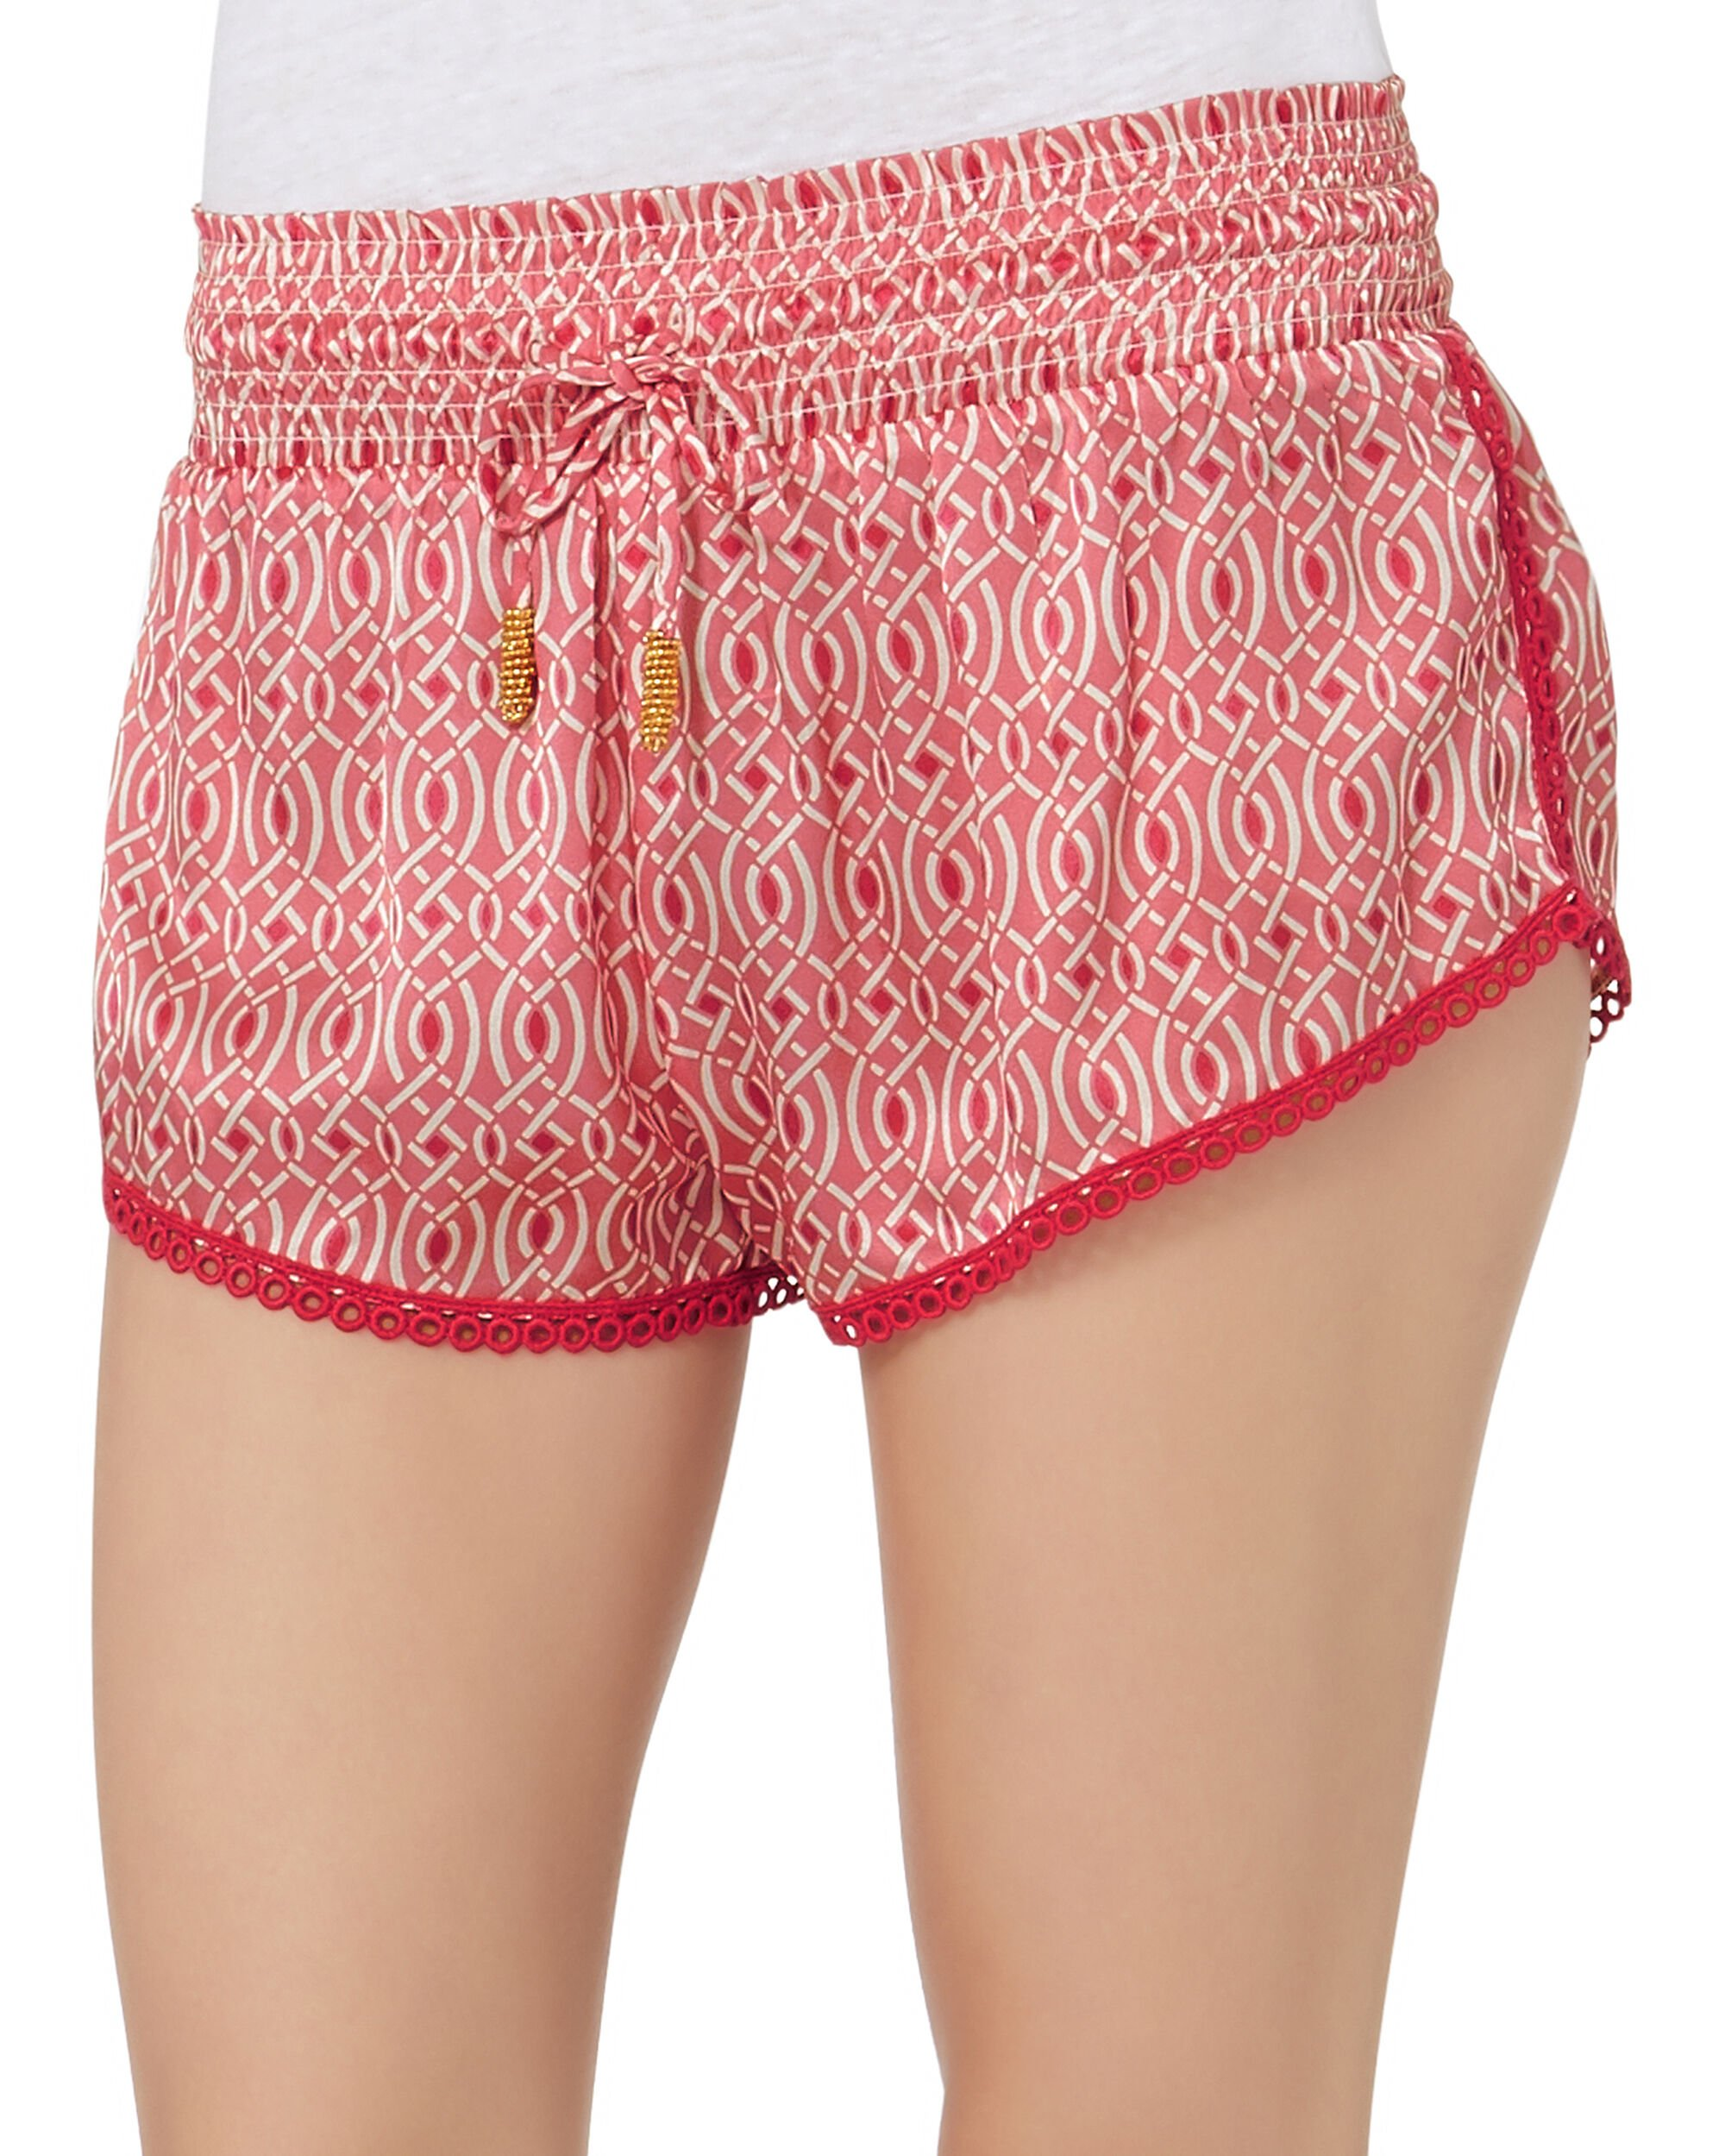 Lynx Rose Shorts, PRINT, hi-res